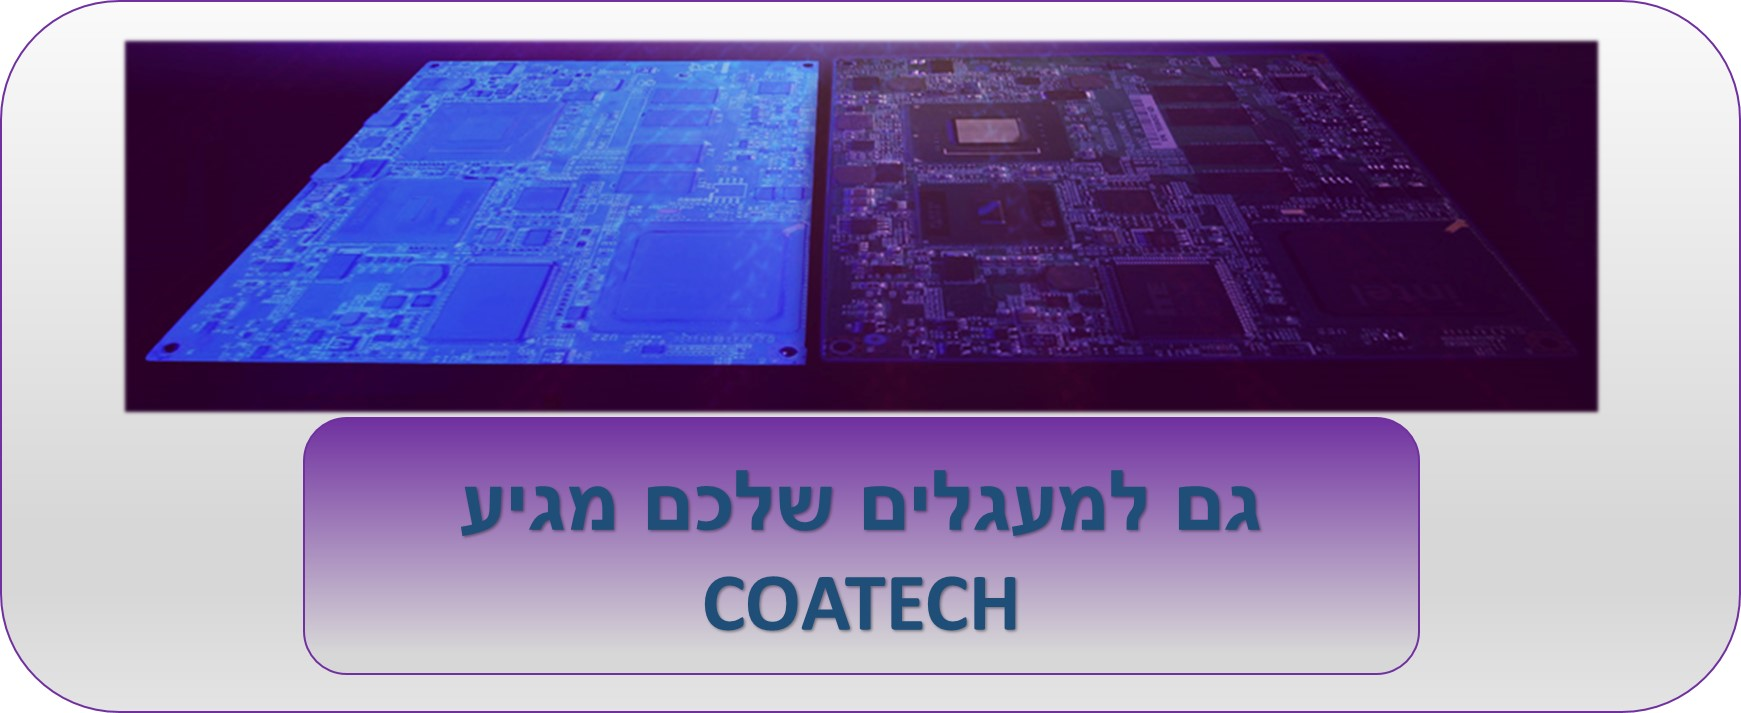 coatech.co.il